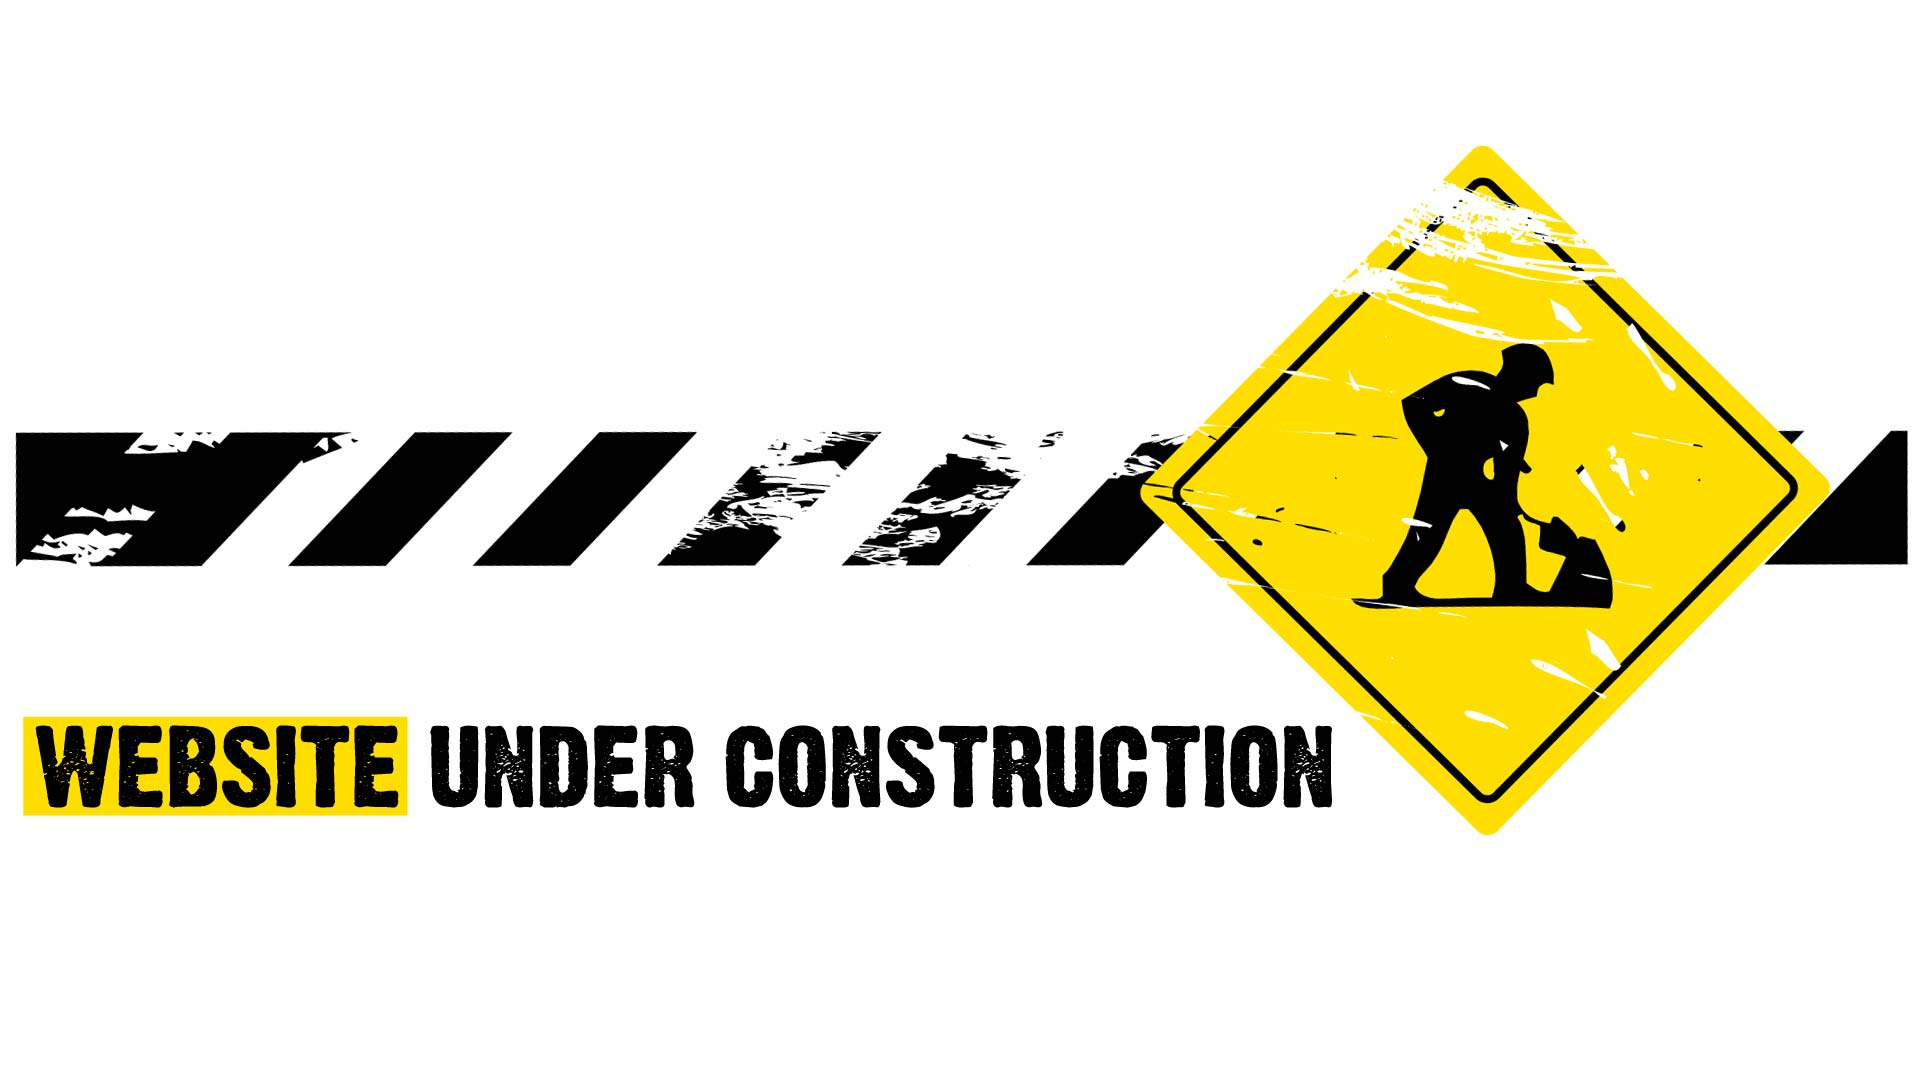 Website Under Construction  Beritaposm. Gps Trackers For Wallets Pay Your Credit Card. Anderson Windows Series 100 Direct Tv Pc App. Devry University Online Programs. Private In Home Tutoring Hosted Phone Numbers. Ally Savings Account Review East Real Estate. Morleys School Furniture Aig Reverse Mortgage. Phd Thesis On Leadership U Verse Order Status. Best Photo Editing Online Sites